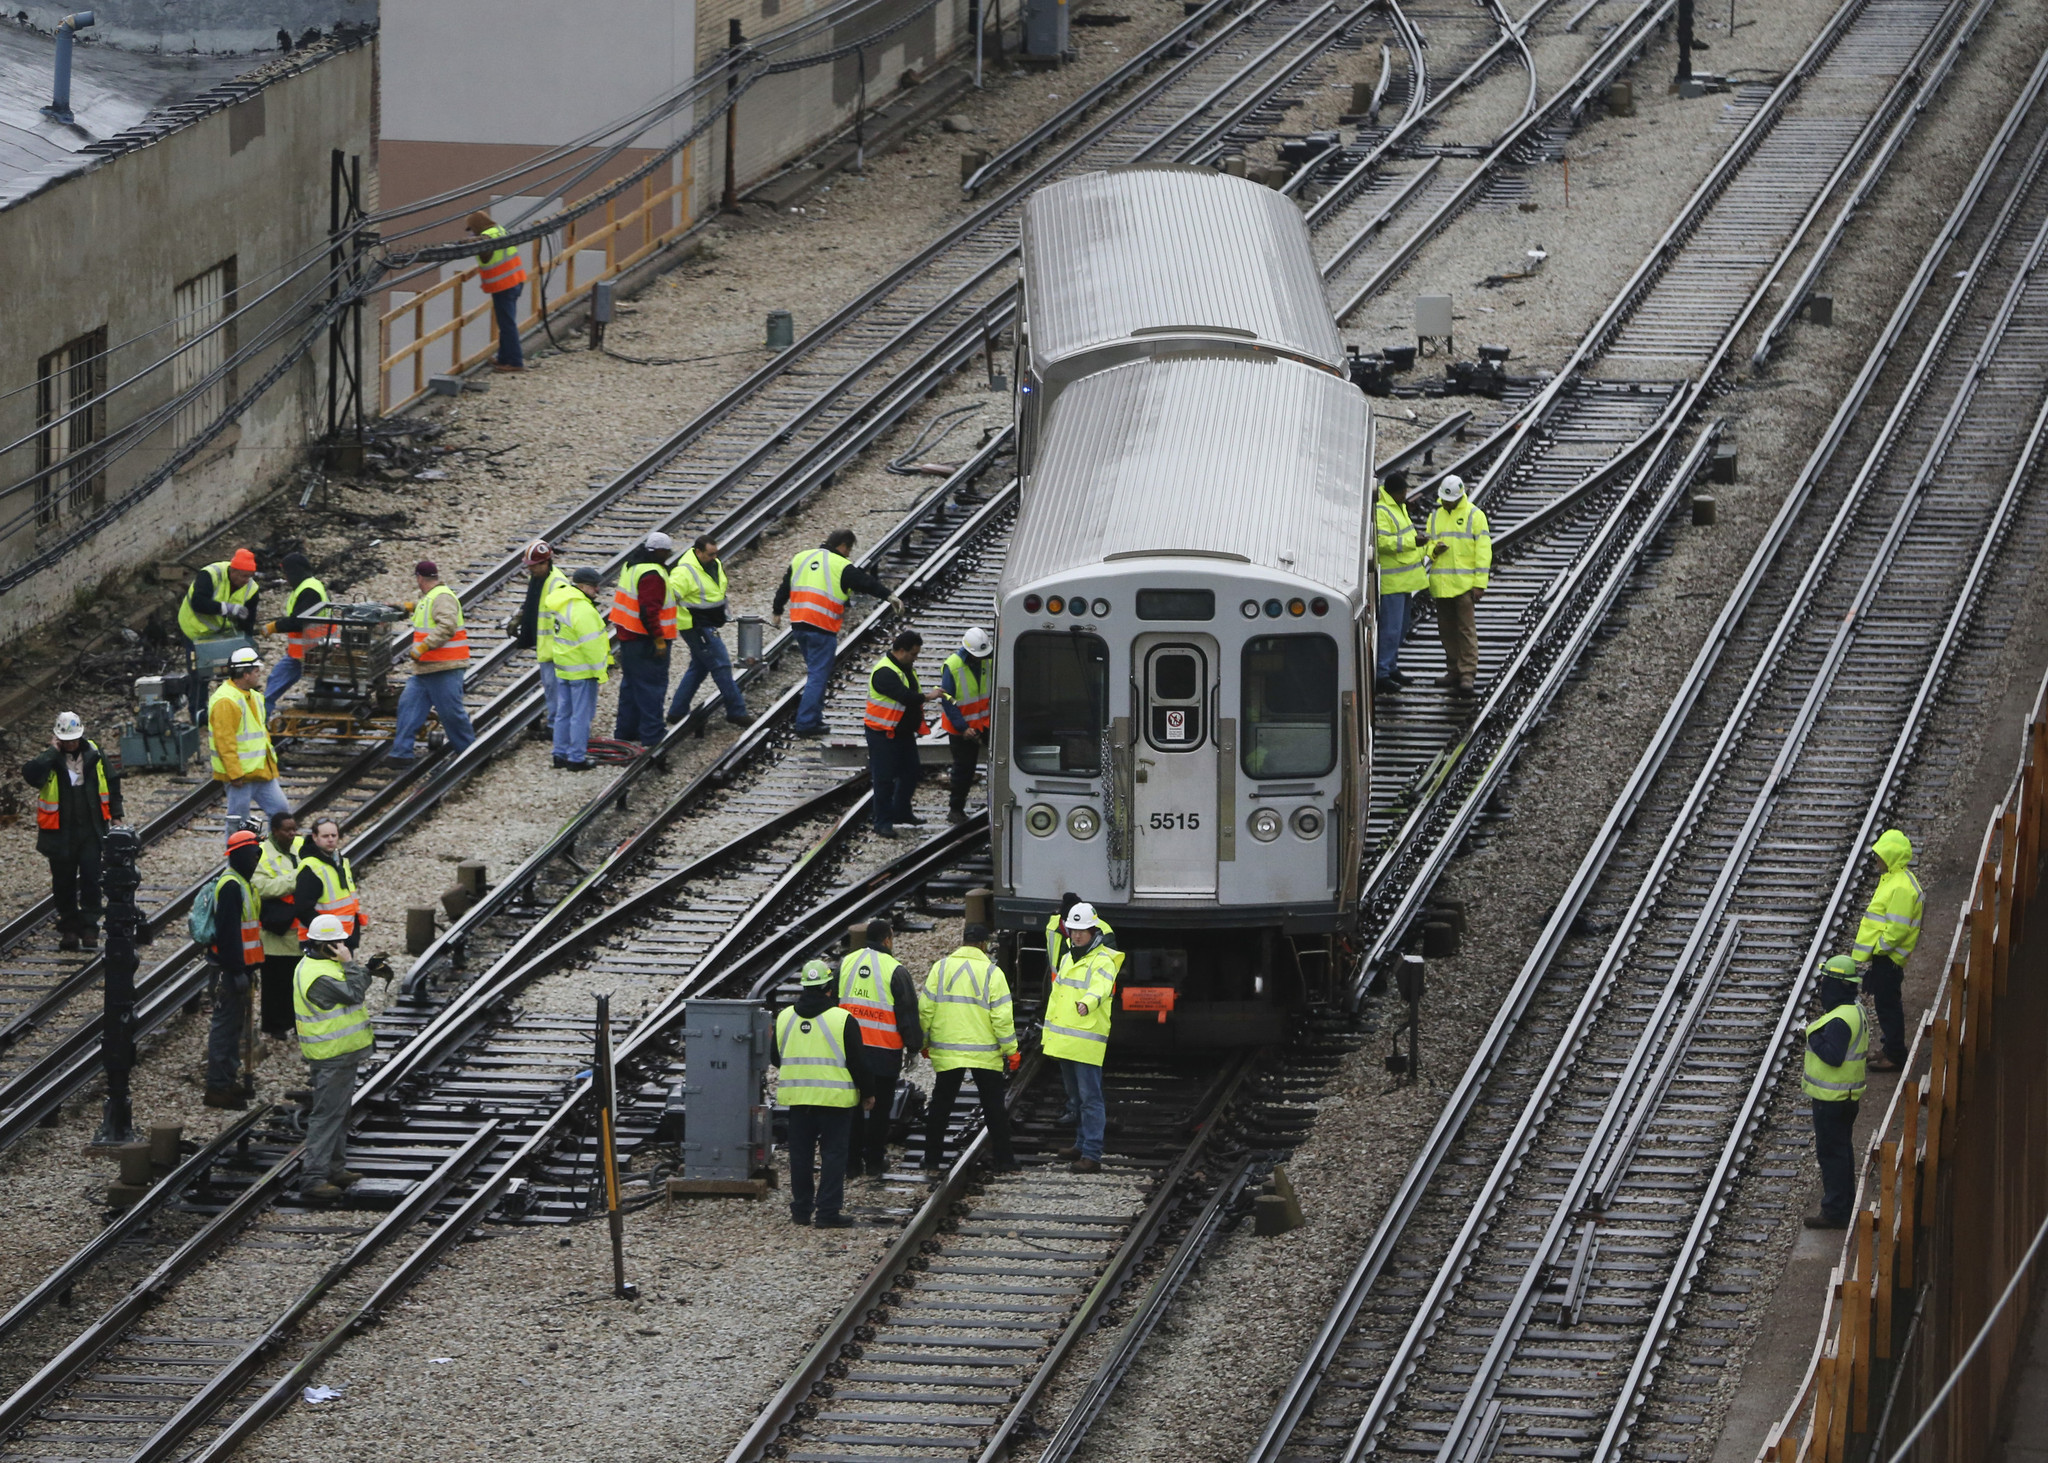 service resumes on cta red line after derailment